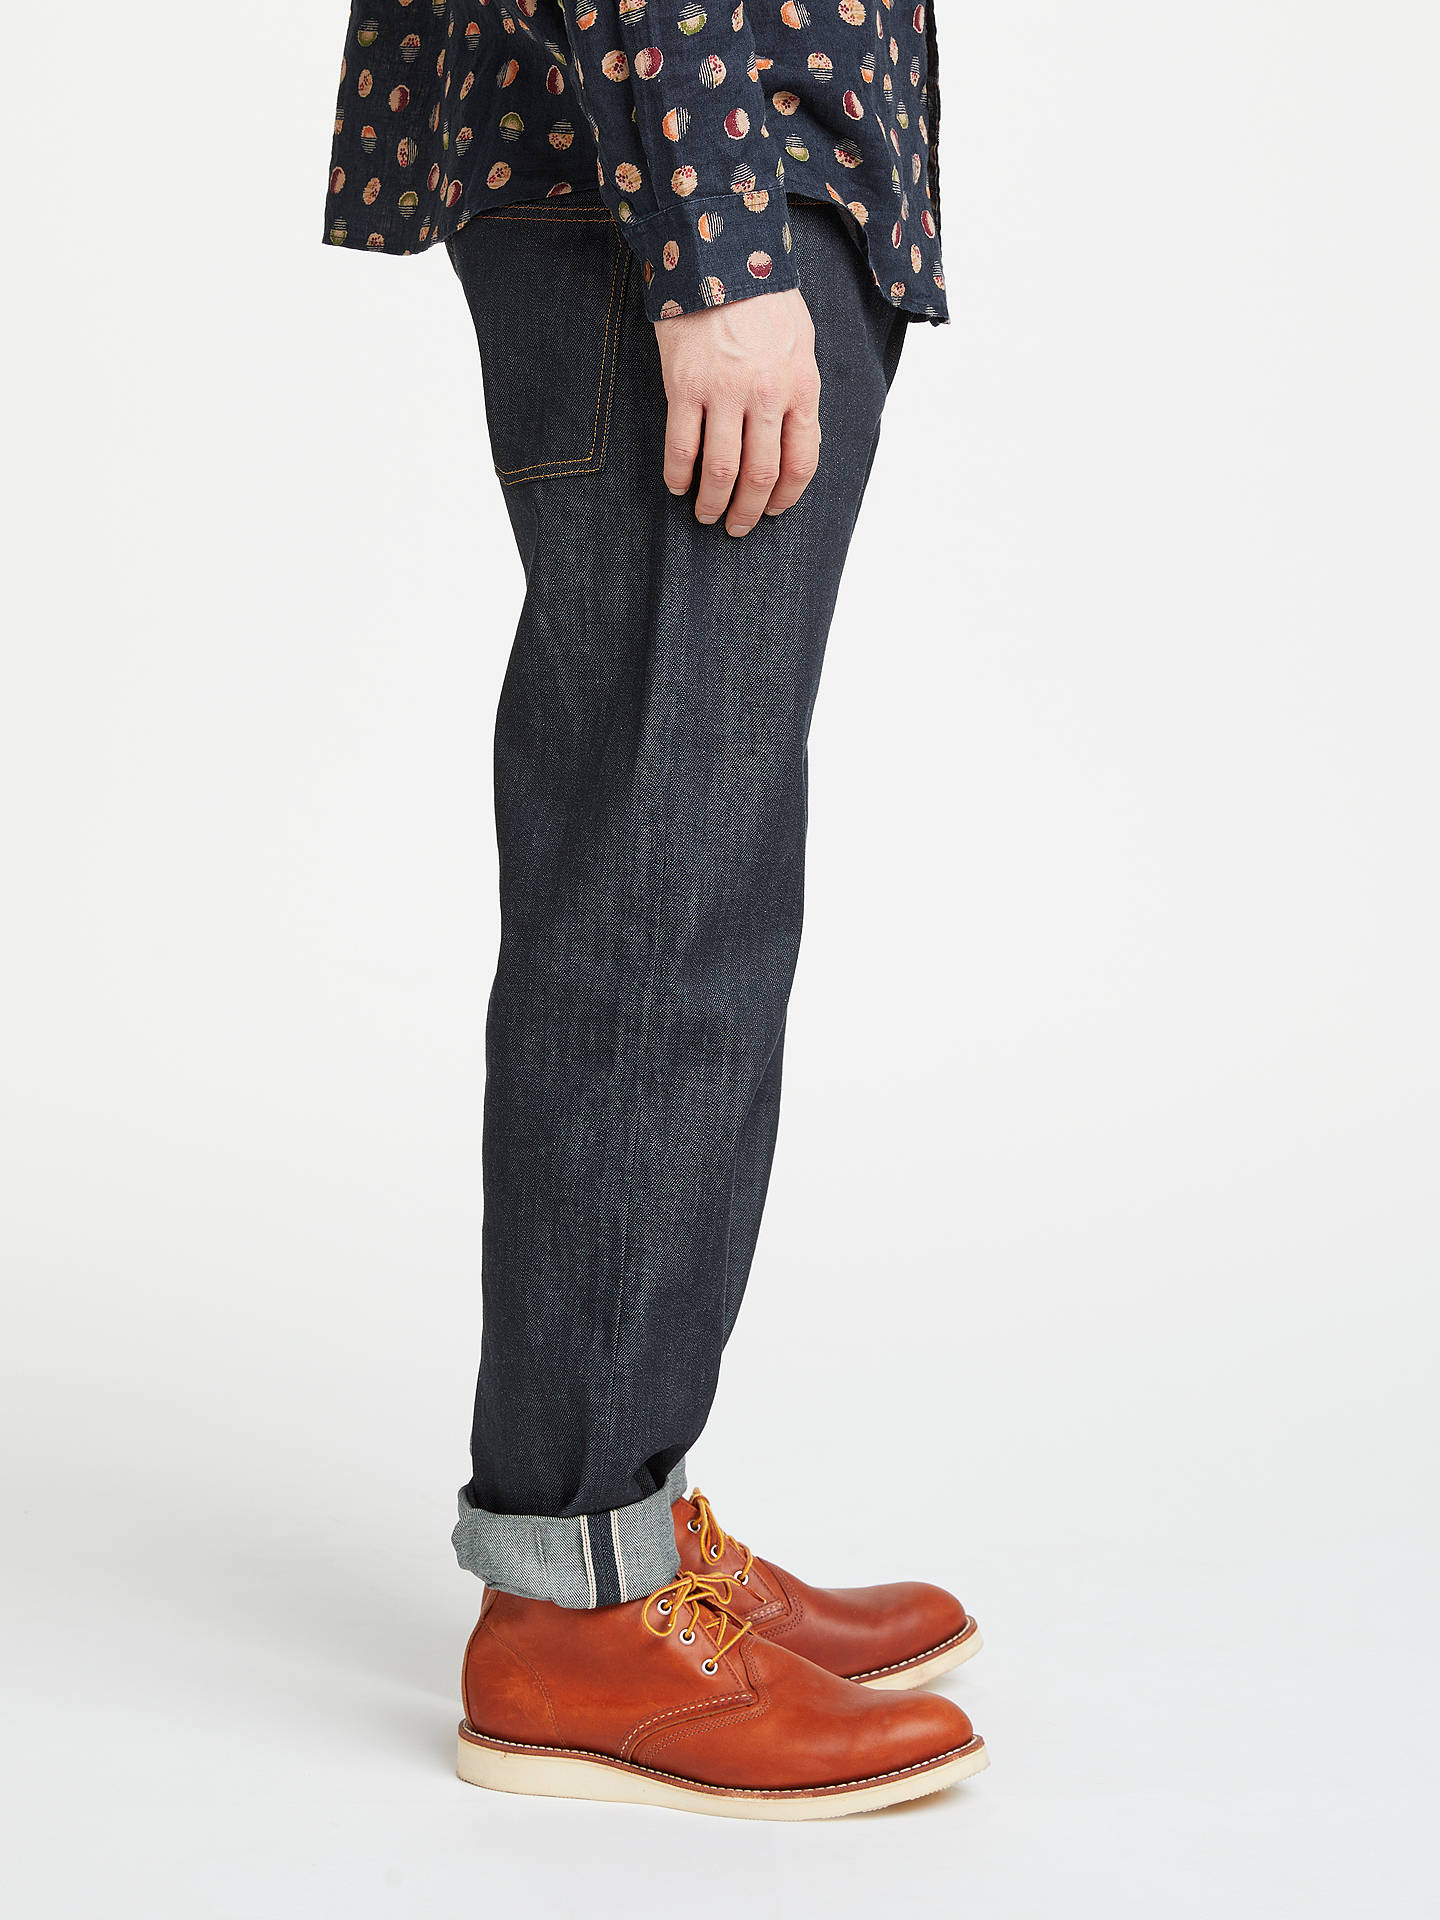 Buy JOHN LEWIS & Co. Unwashed Selvedge Denim Jeans, Blue, 38R Online at johnlewis.com